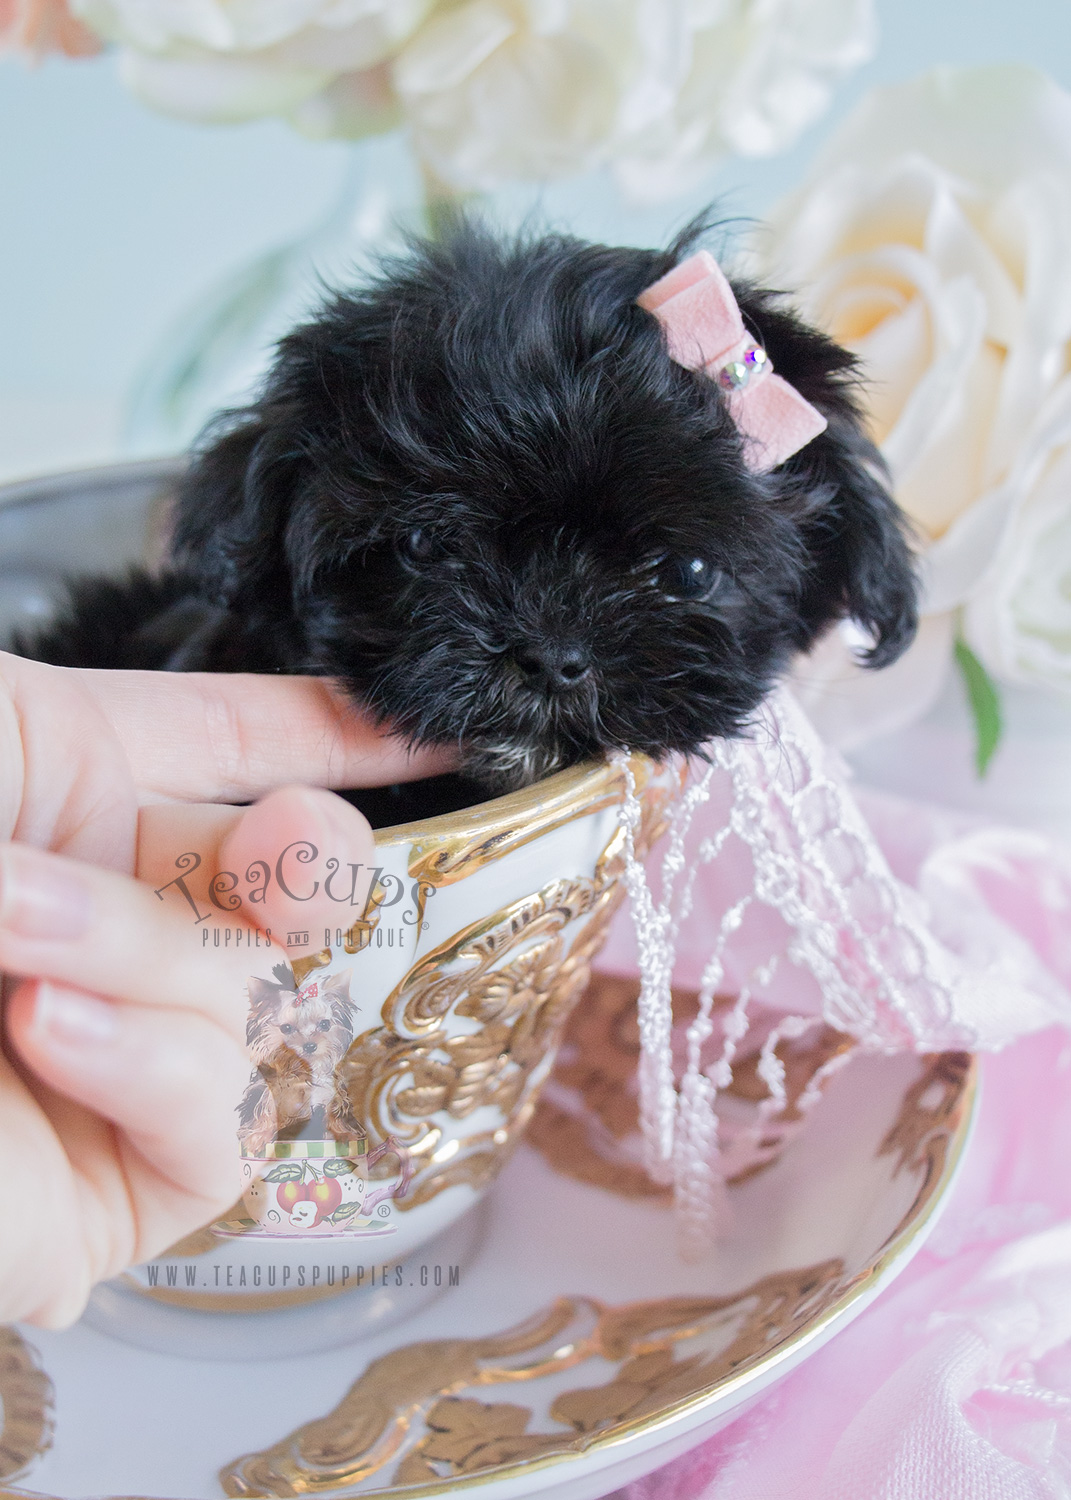 10oz Maltipoo Puppy For Sale!